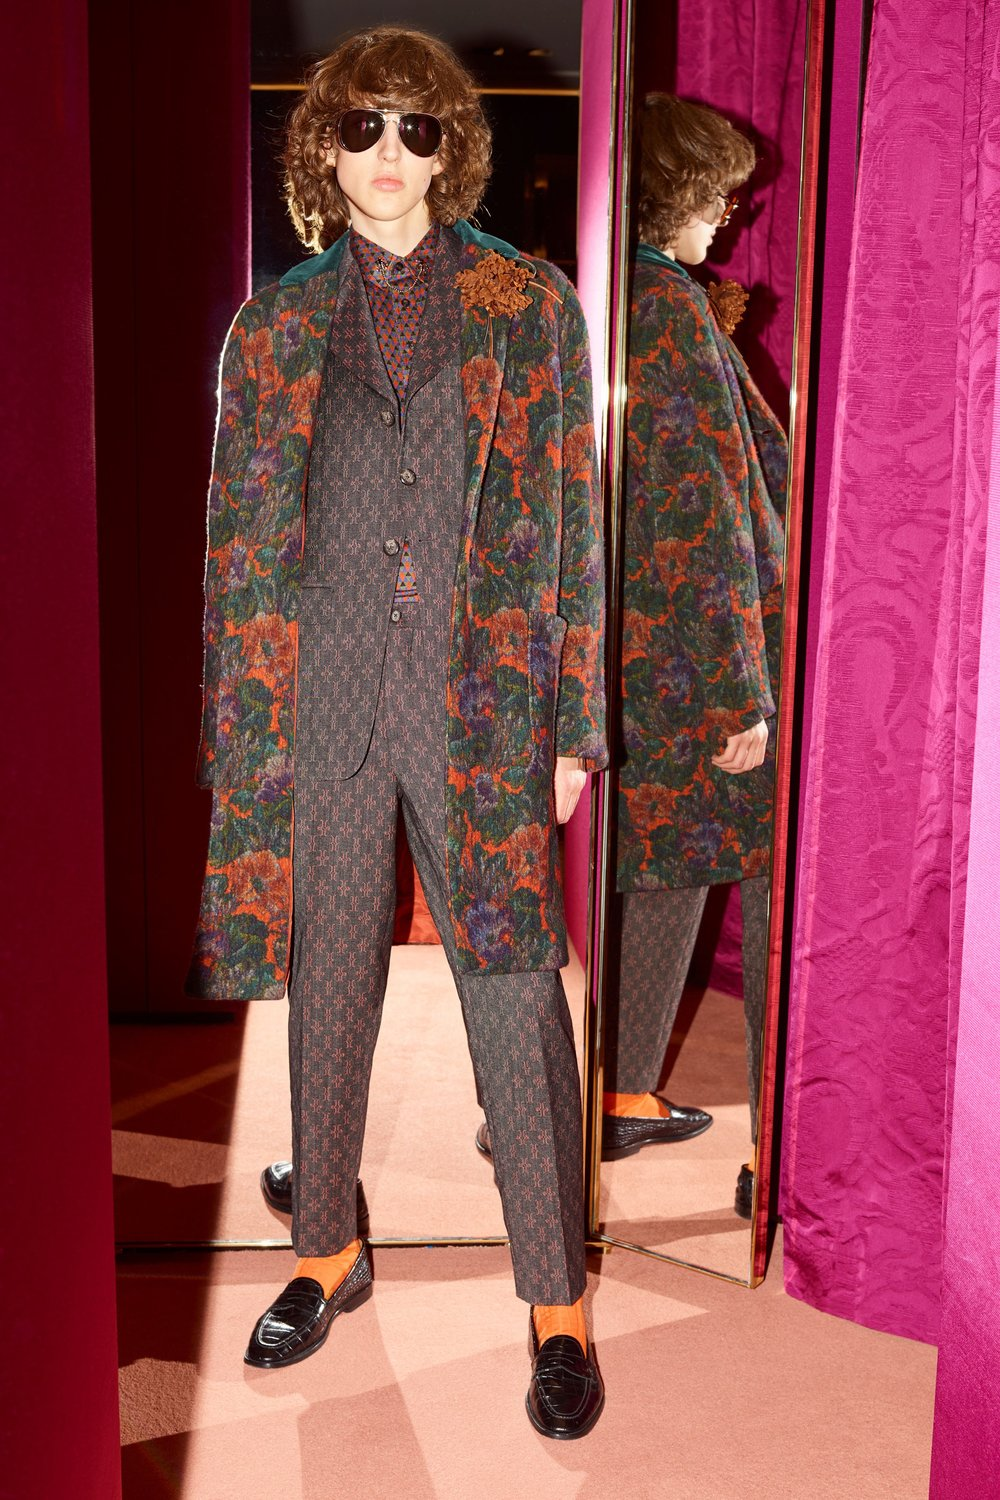 Pattern - Jacquards and print, suits and coats - Etro